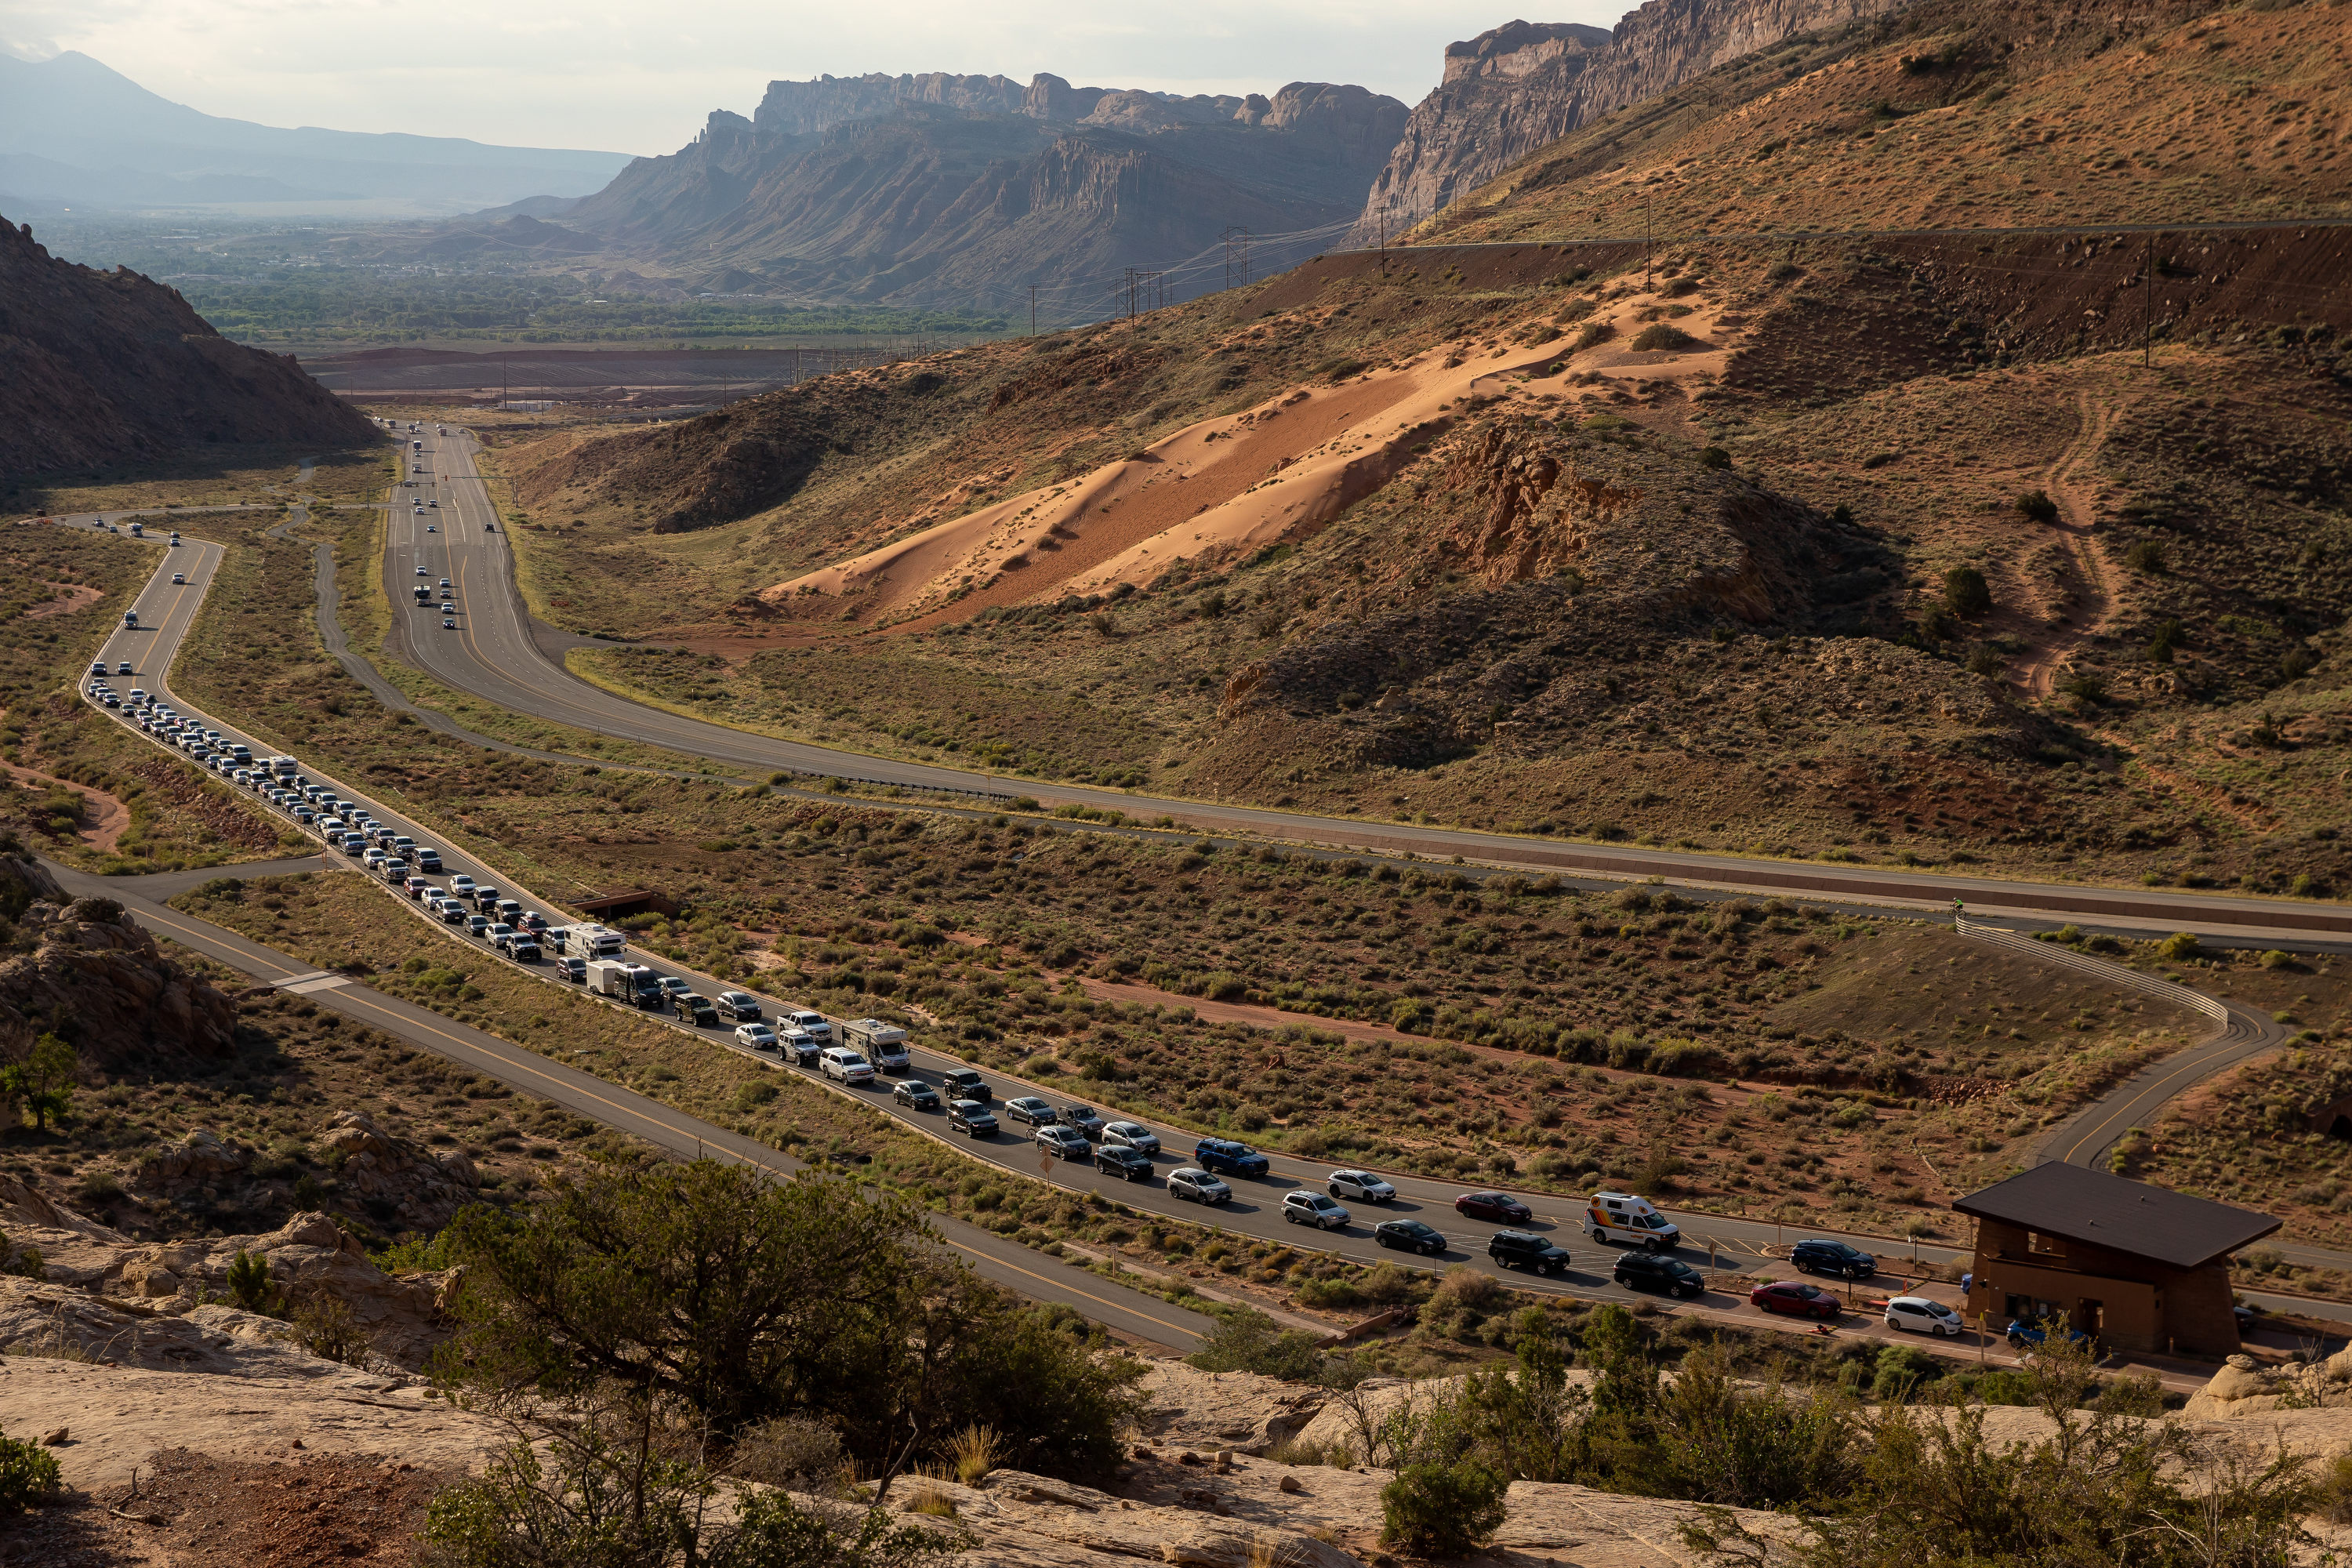 The entrance road to Arches National Park outside Moab begins to back up with visitors on Sunday, Sept. 19, 2021.